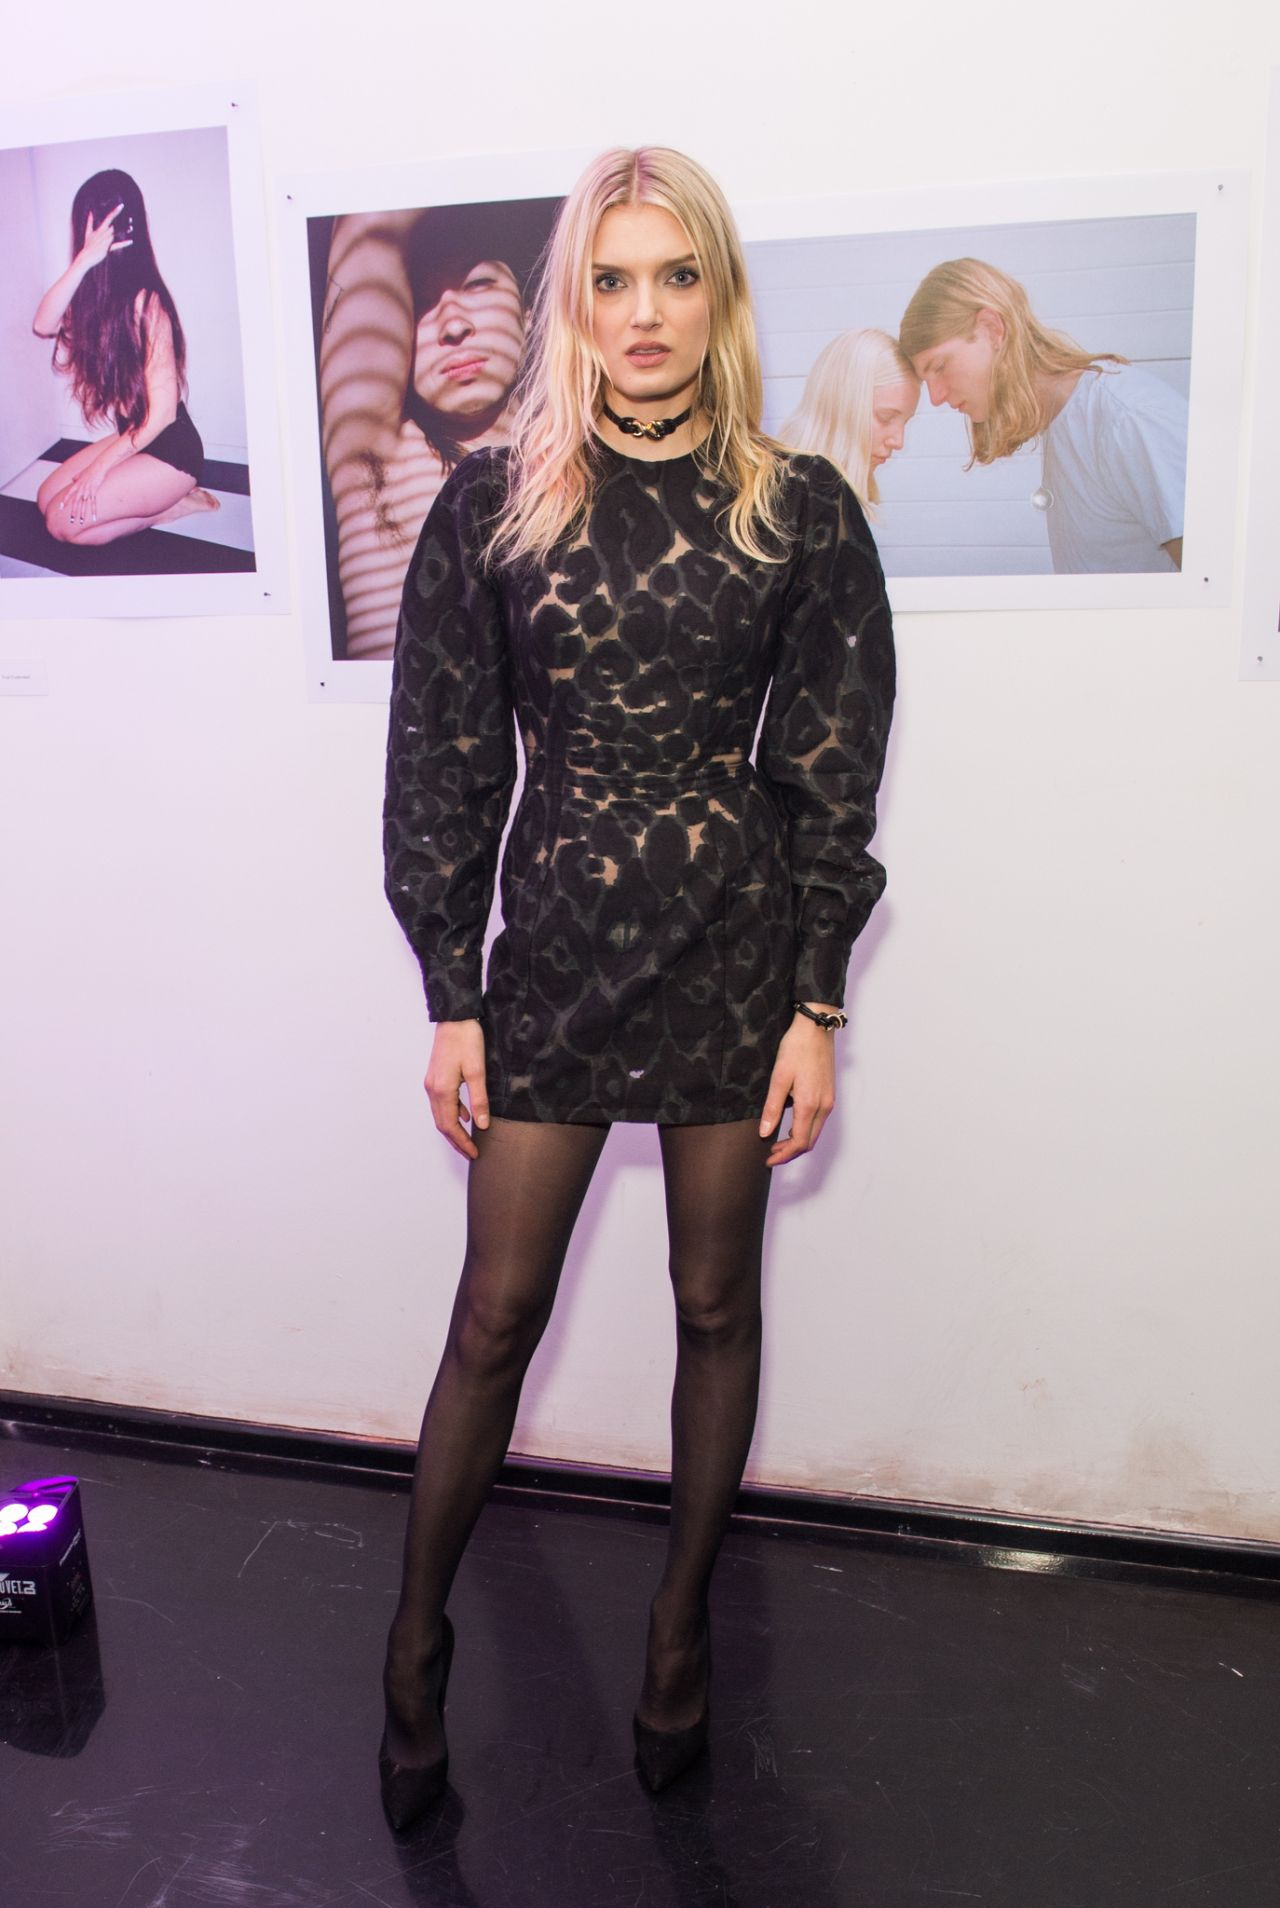 lily-donaldson-urban-outfitters-and-centrefold-magazine-lfw-launch-party-in-london-2-20-2016-2